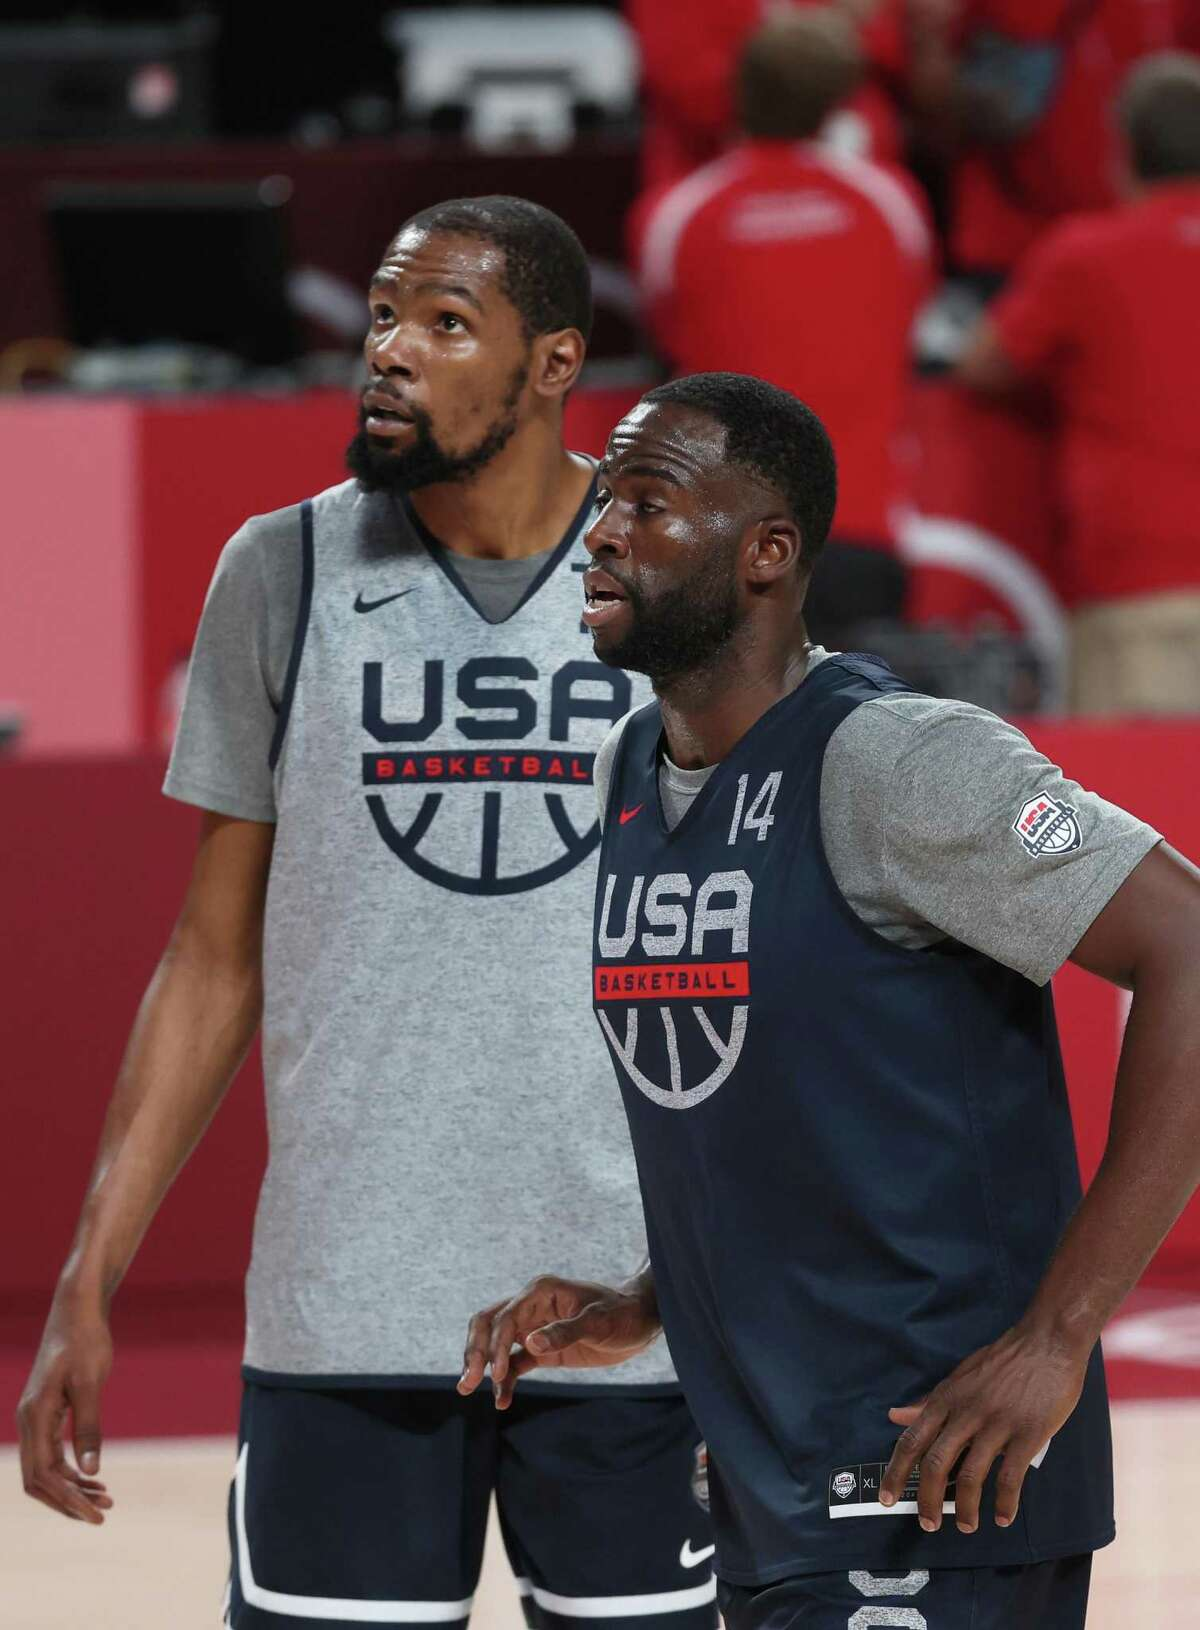 Kevin Durant (land Draymond Green hope to lead the U.S. to gold.